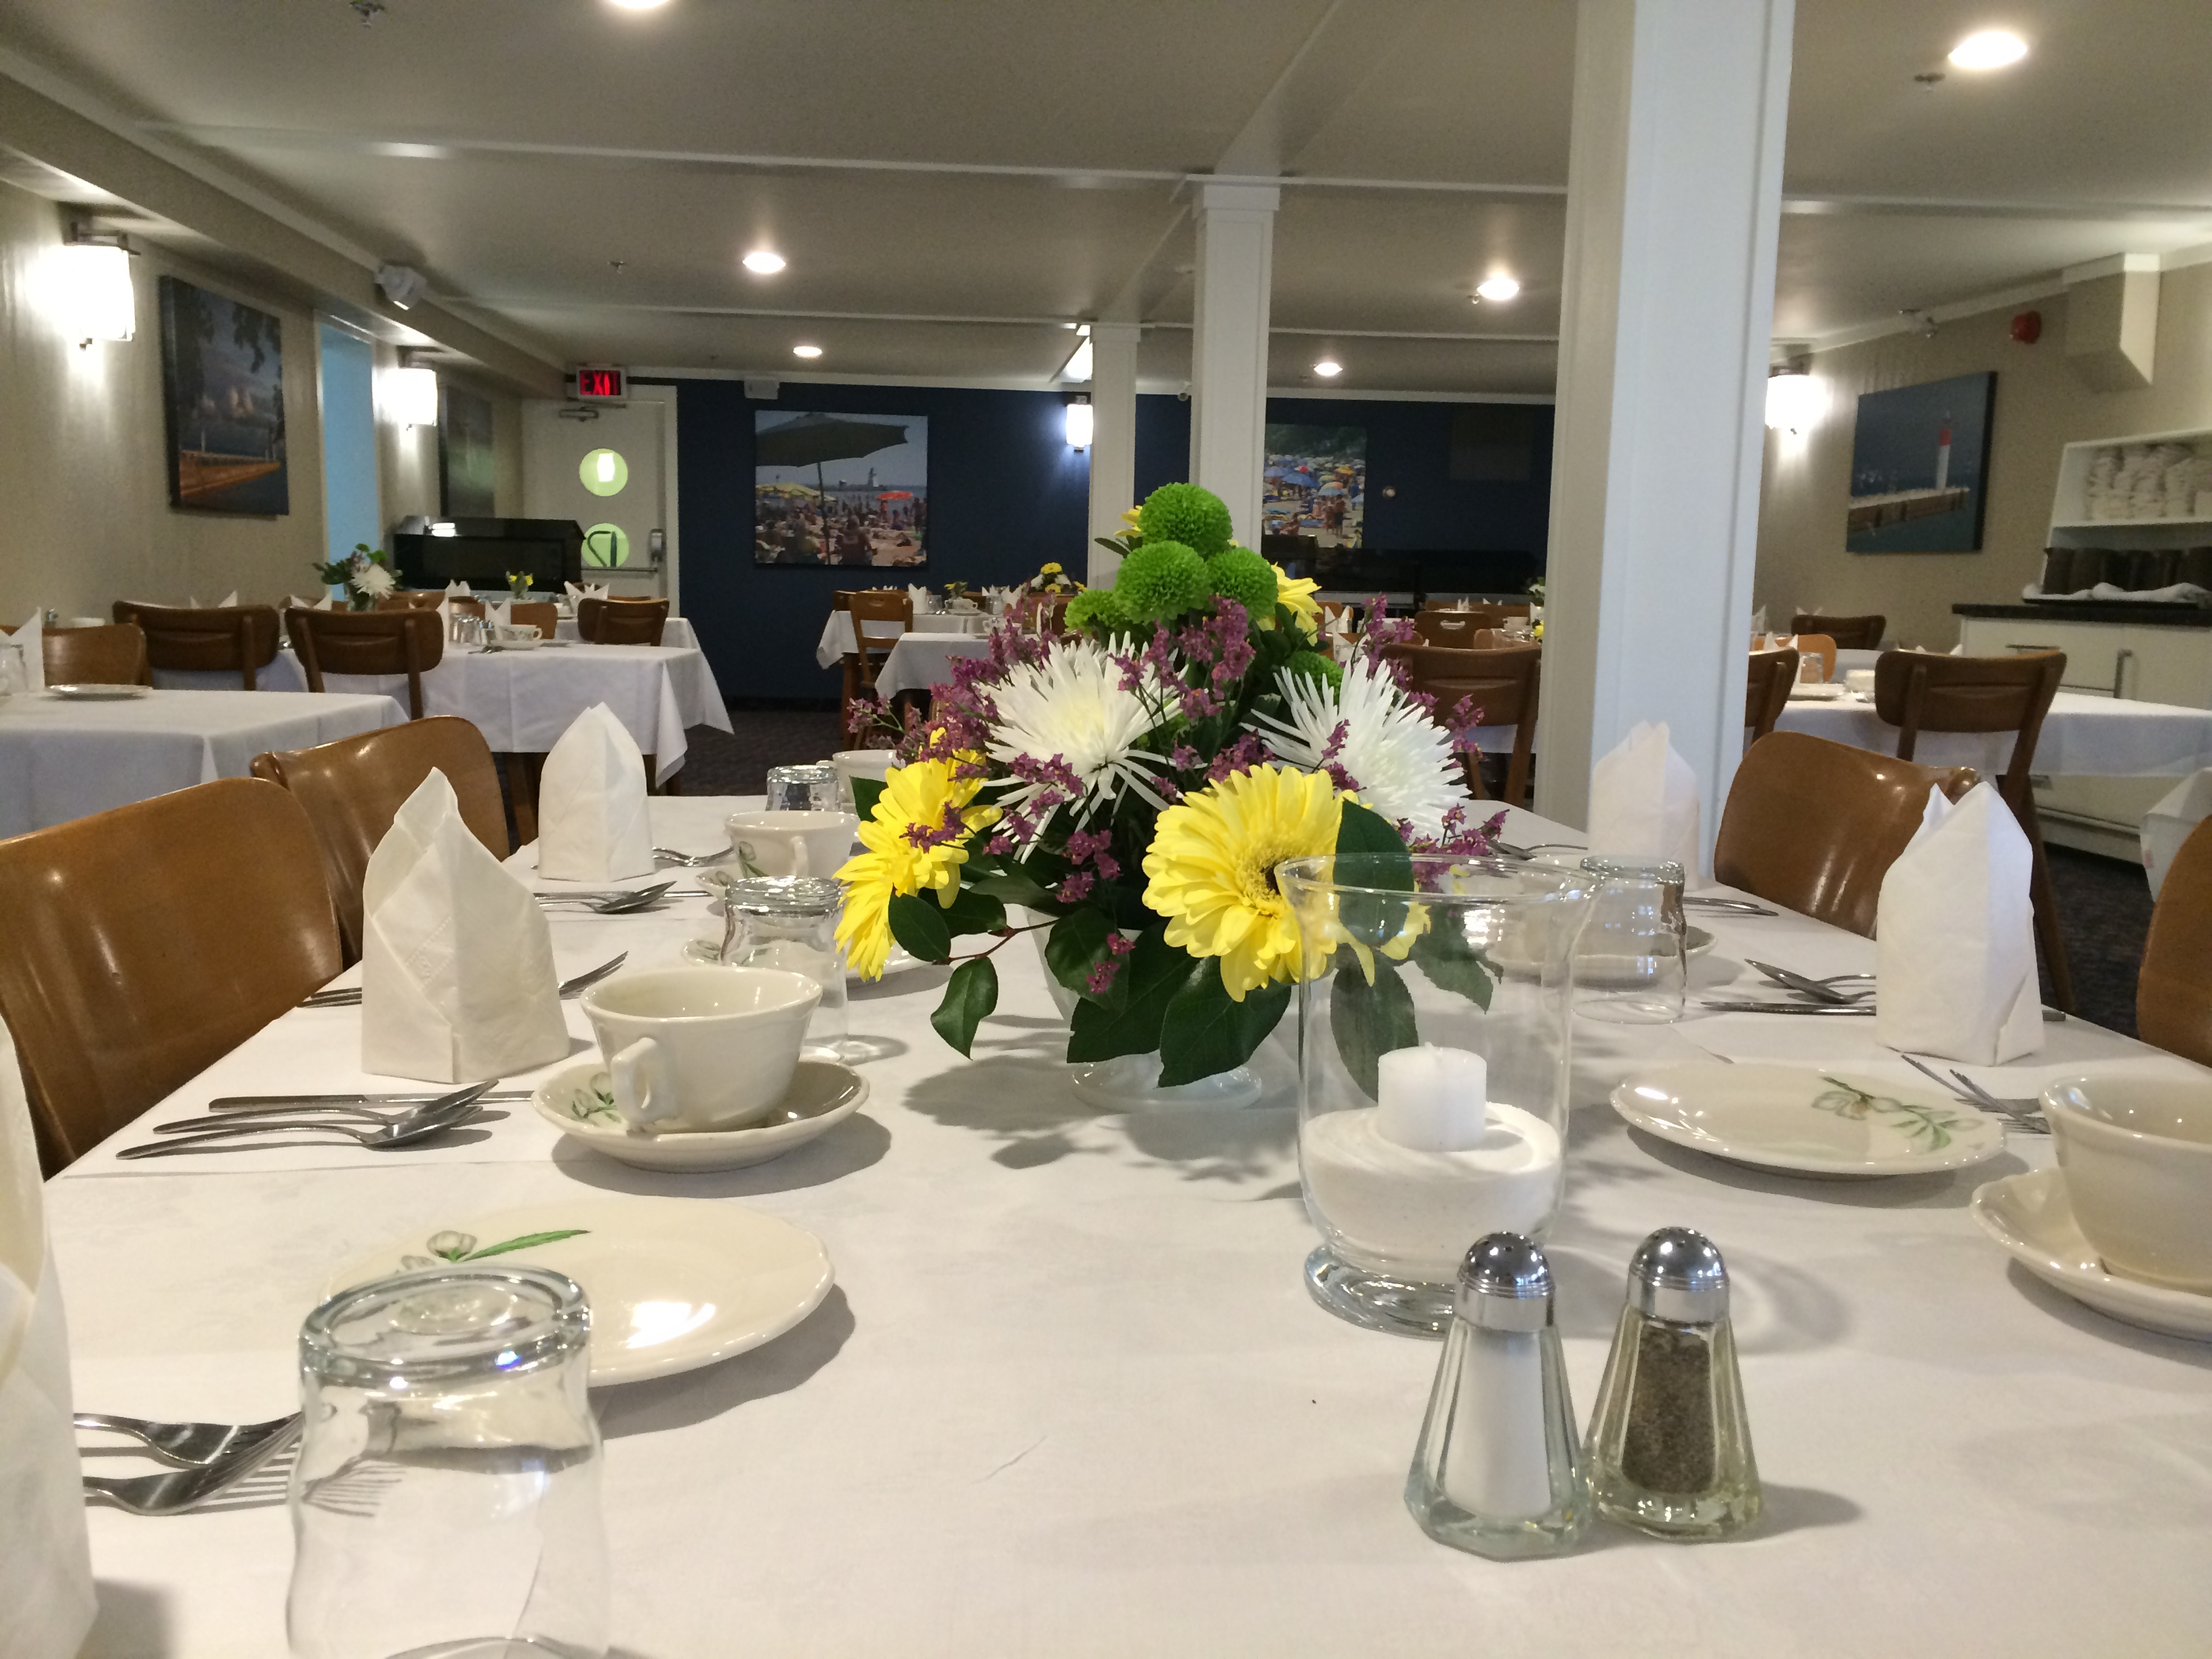 The Cove Room Is Our Most Formal Dinner Featuring Lake Erie Pickerel And Perch Dinners This Por Dining Welcomes Visitors Back Time